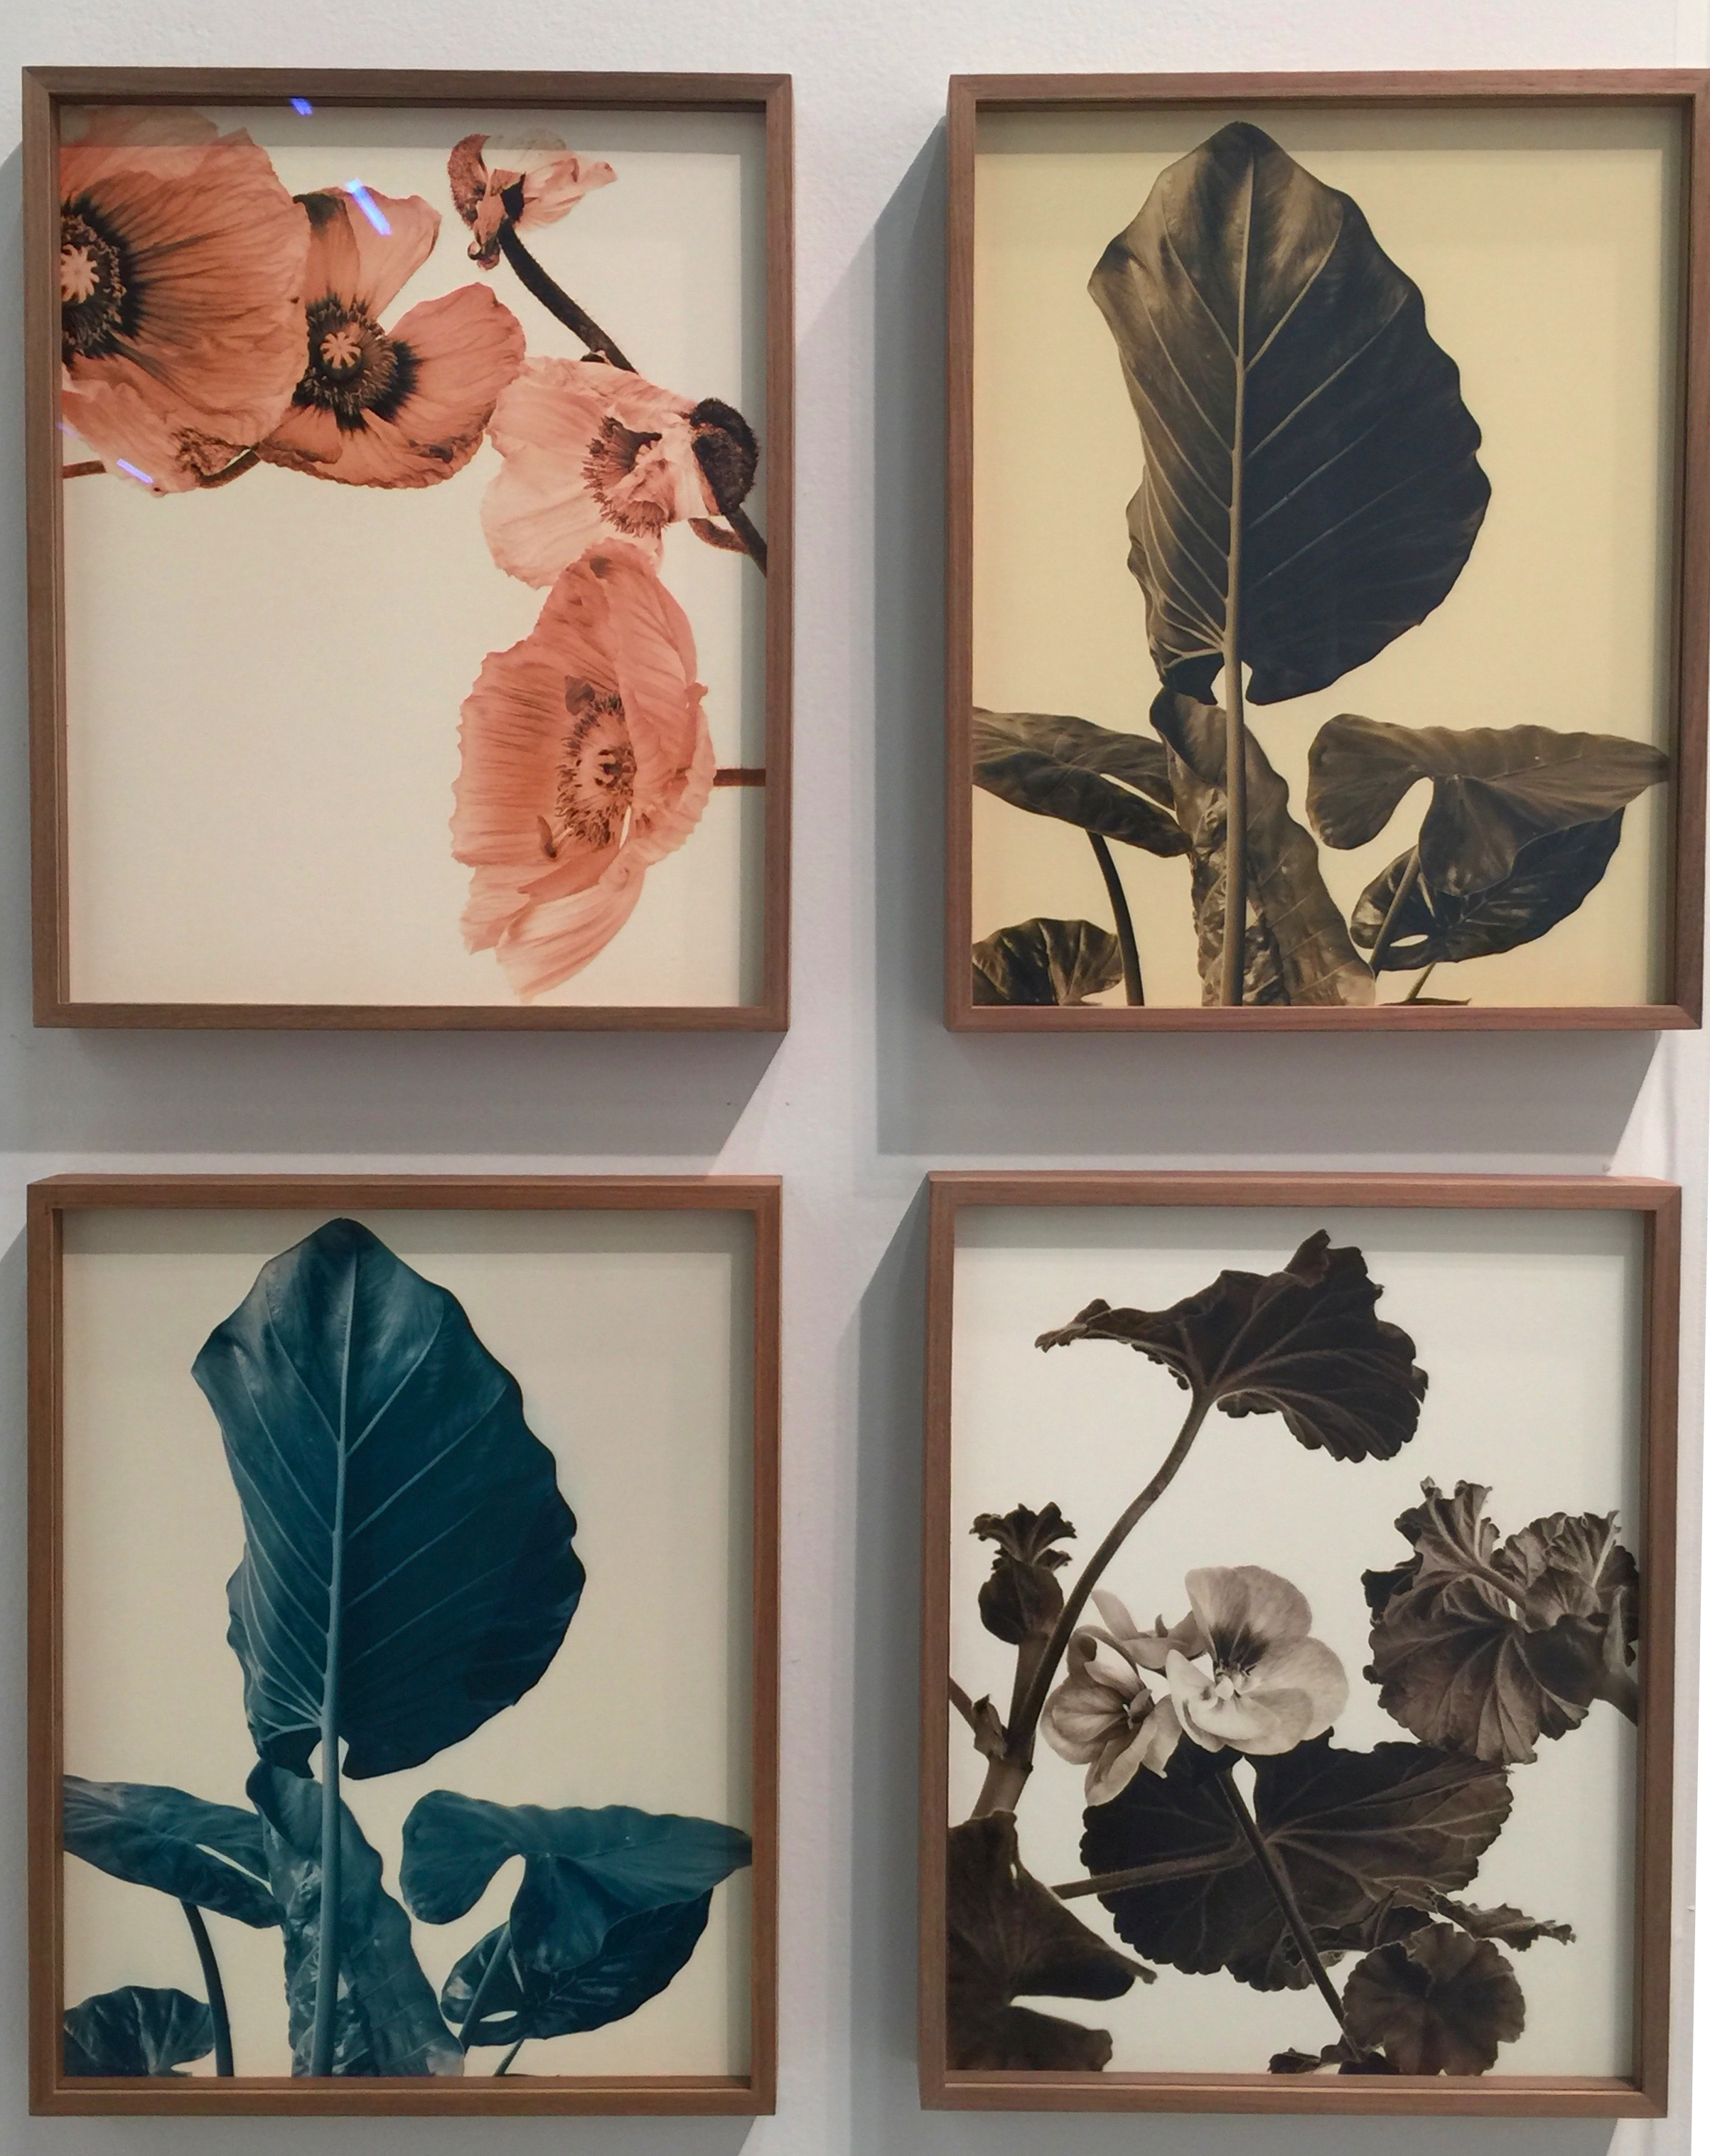 Ulrich Schmitt, Flower Studies, 2000-6, Exhibited by Galerie f5,6